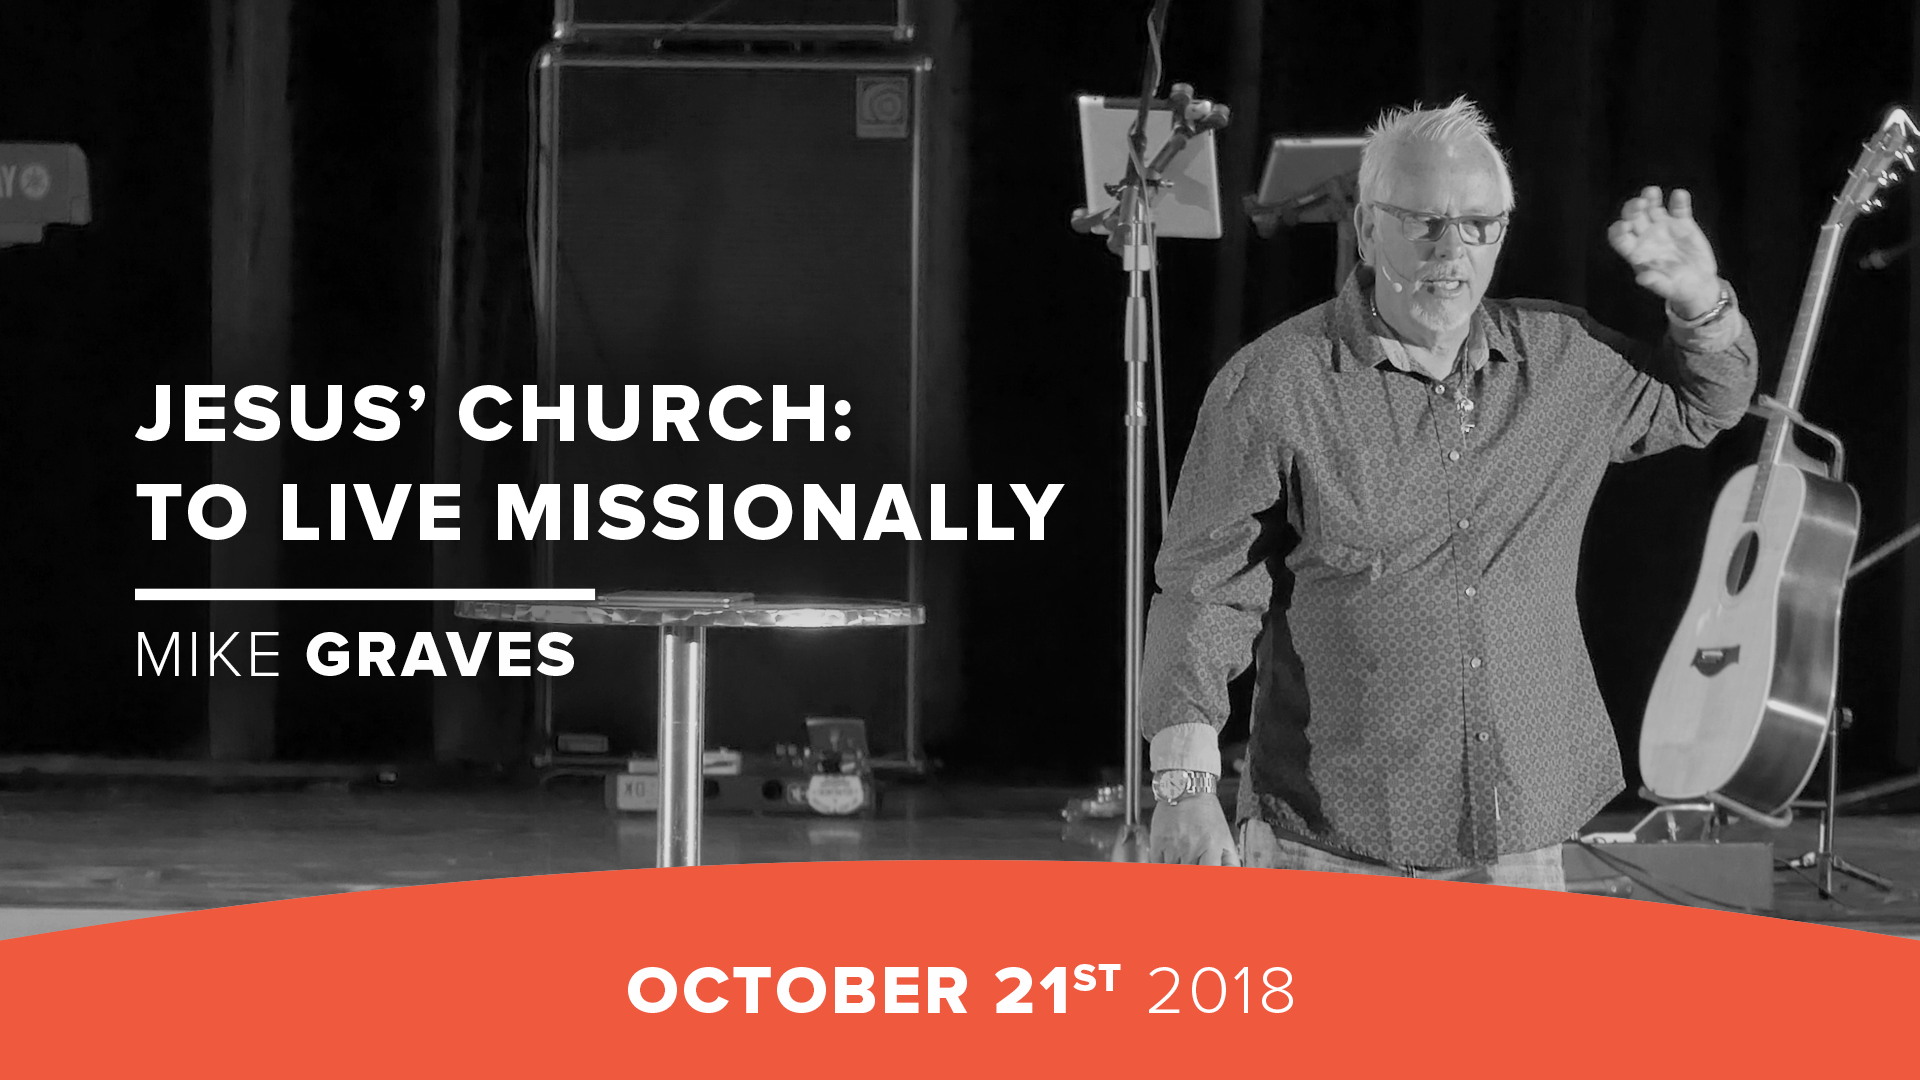 Jesus' Church: To Live Missionally